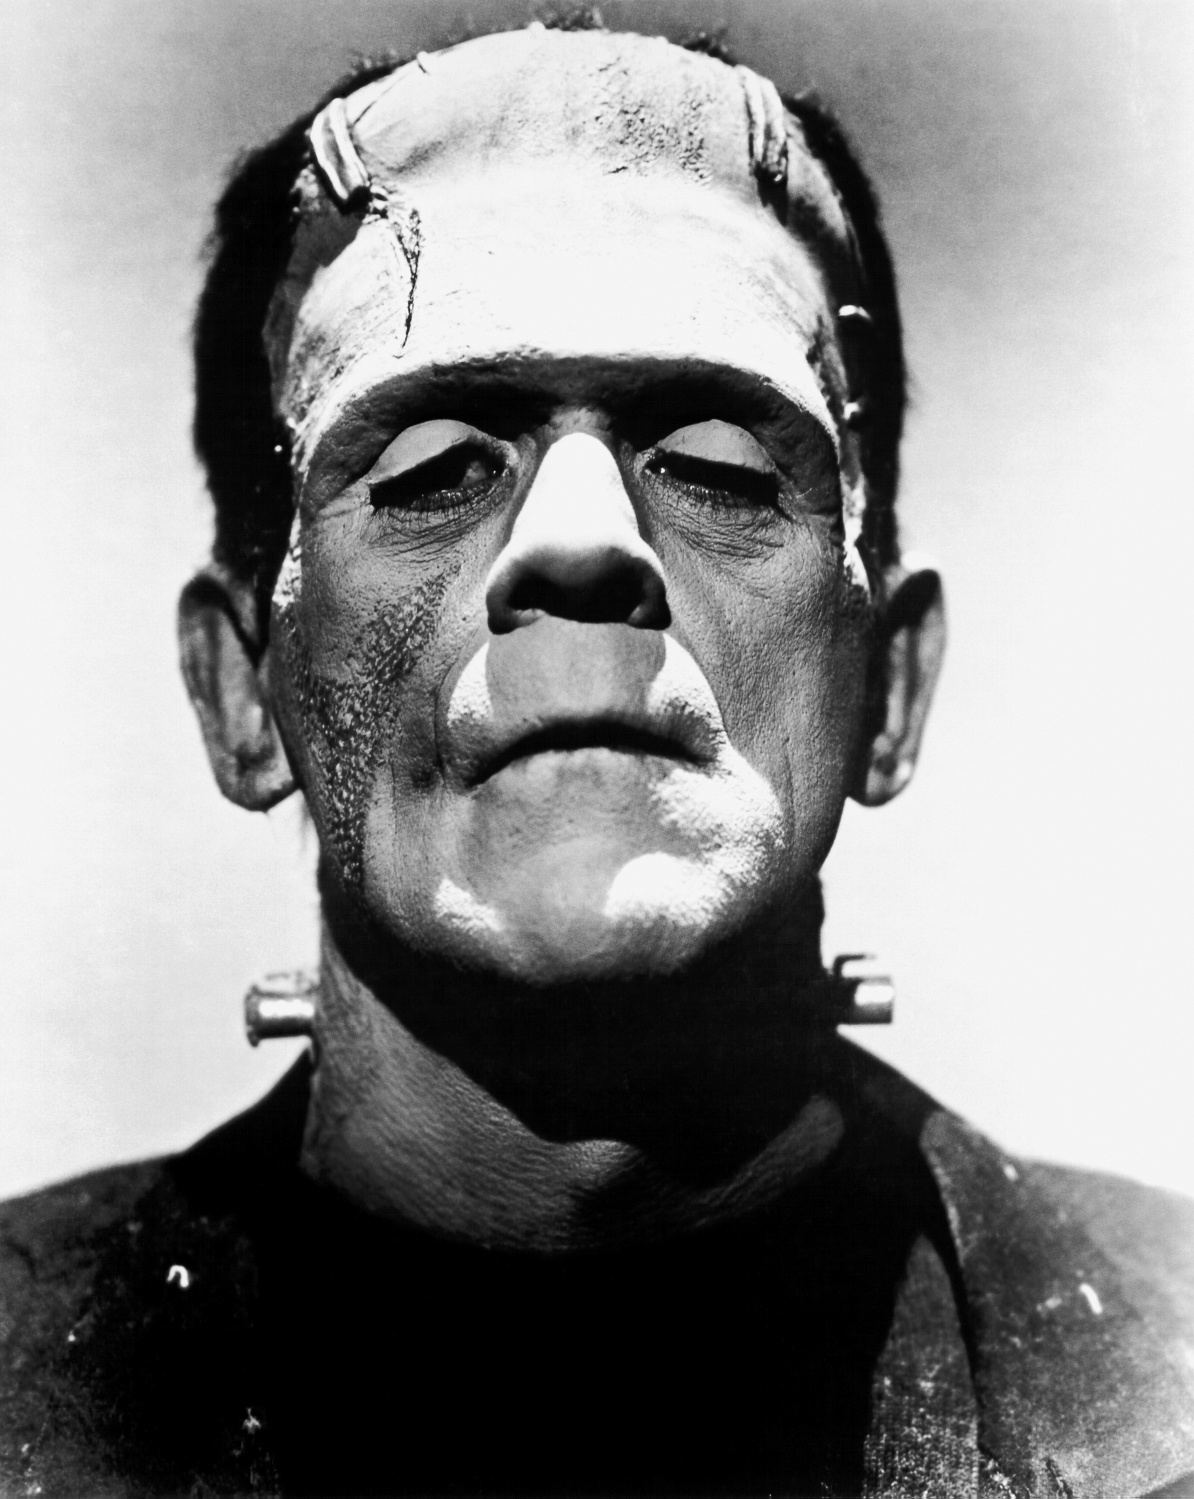 http://upload.wikimedia.org/wikipedia/commons/a/a7/Frankenstein%27s_monster_(Boris_Karloff).jpg